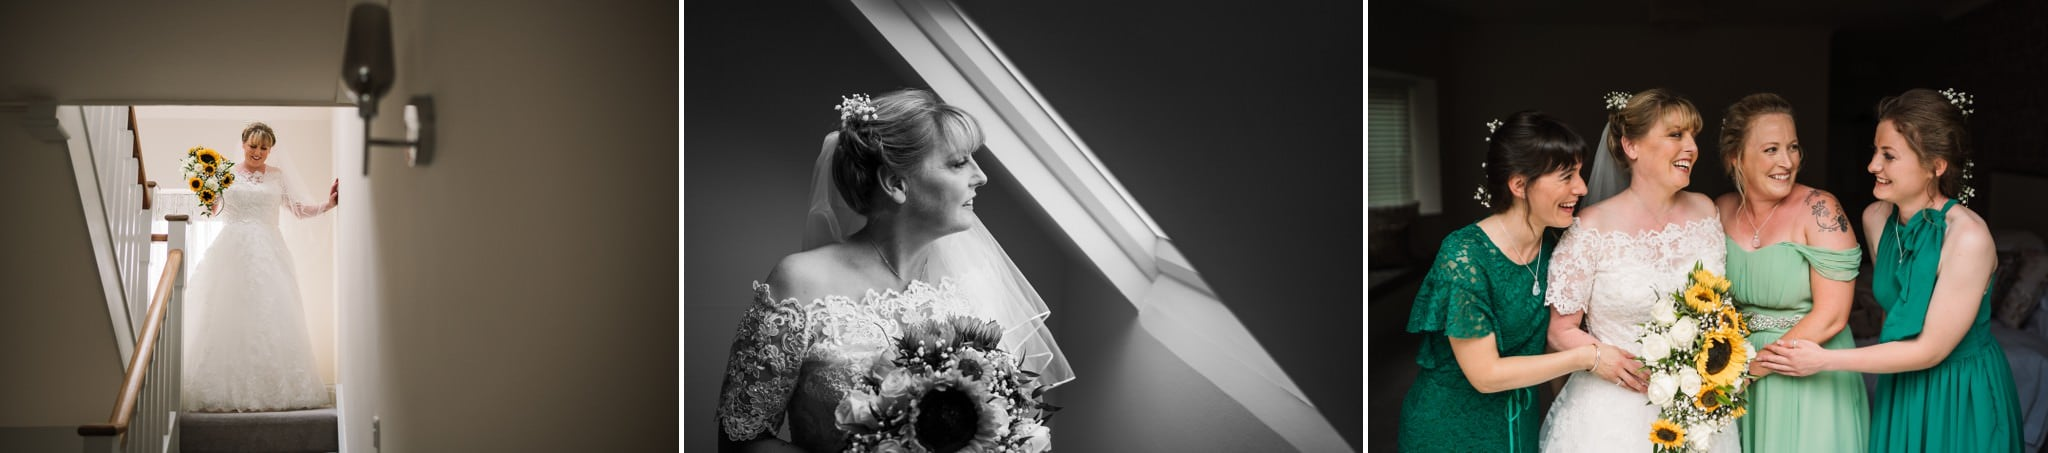 Hampshire wedding photography at Three Choirs Vineyard wedding